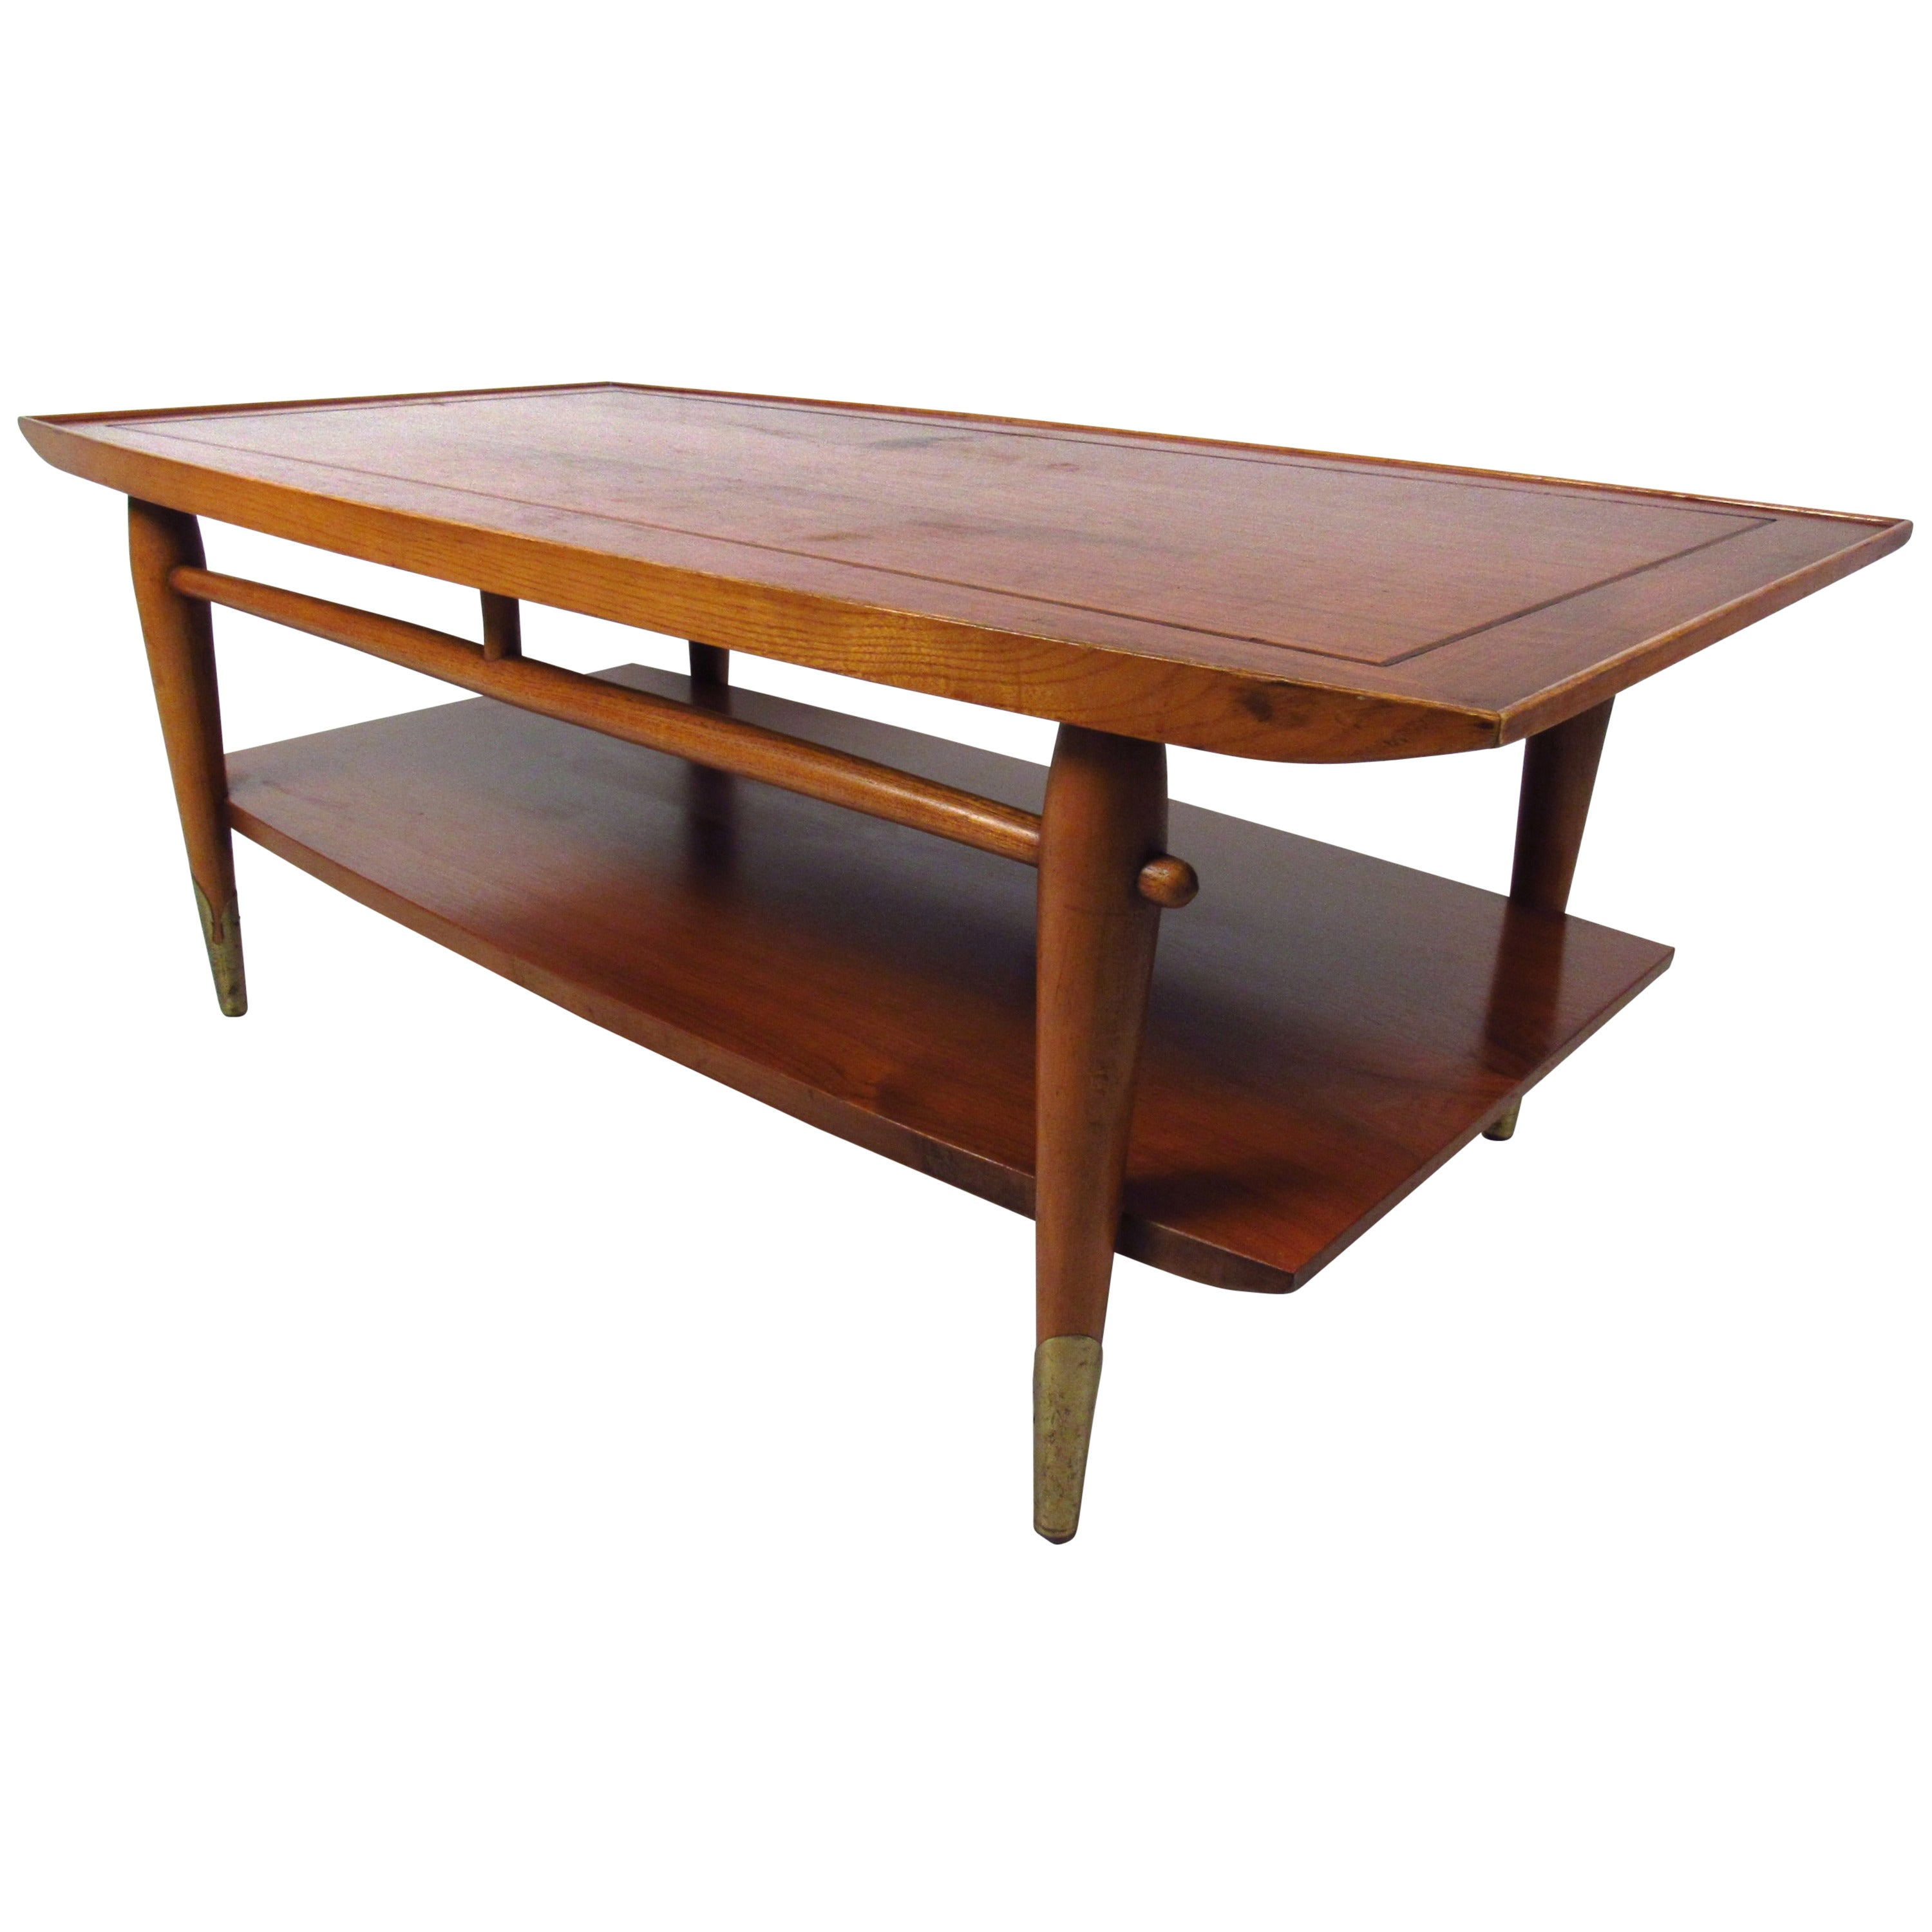 Mid-Century Modern Two-Tier Lane Coffee Table